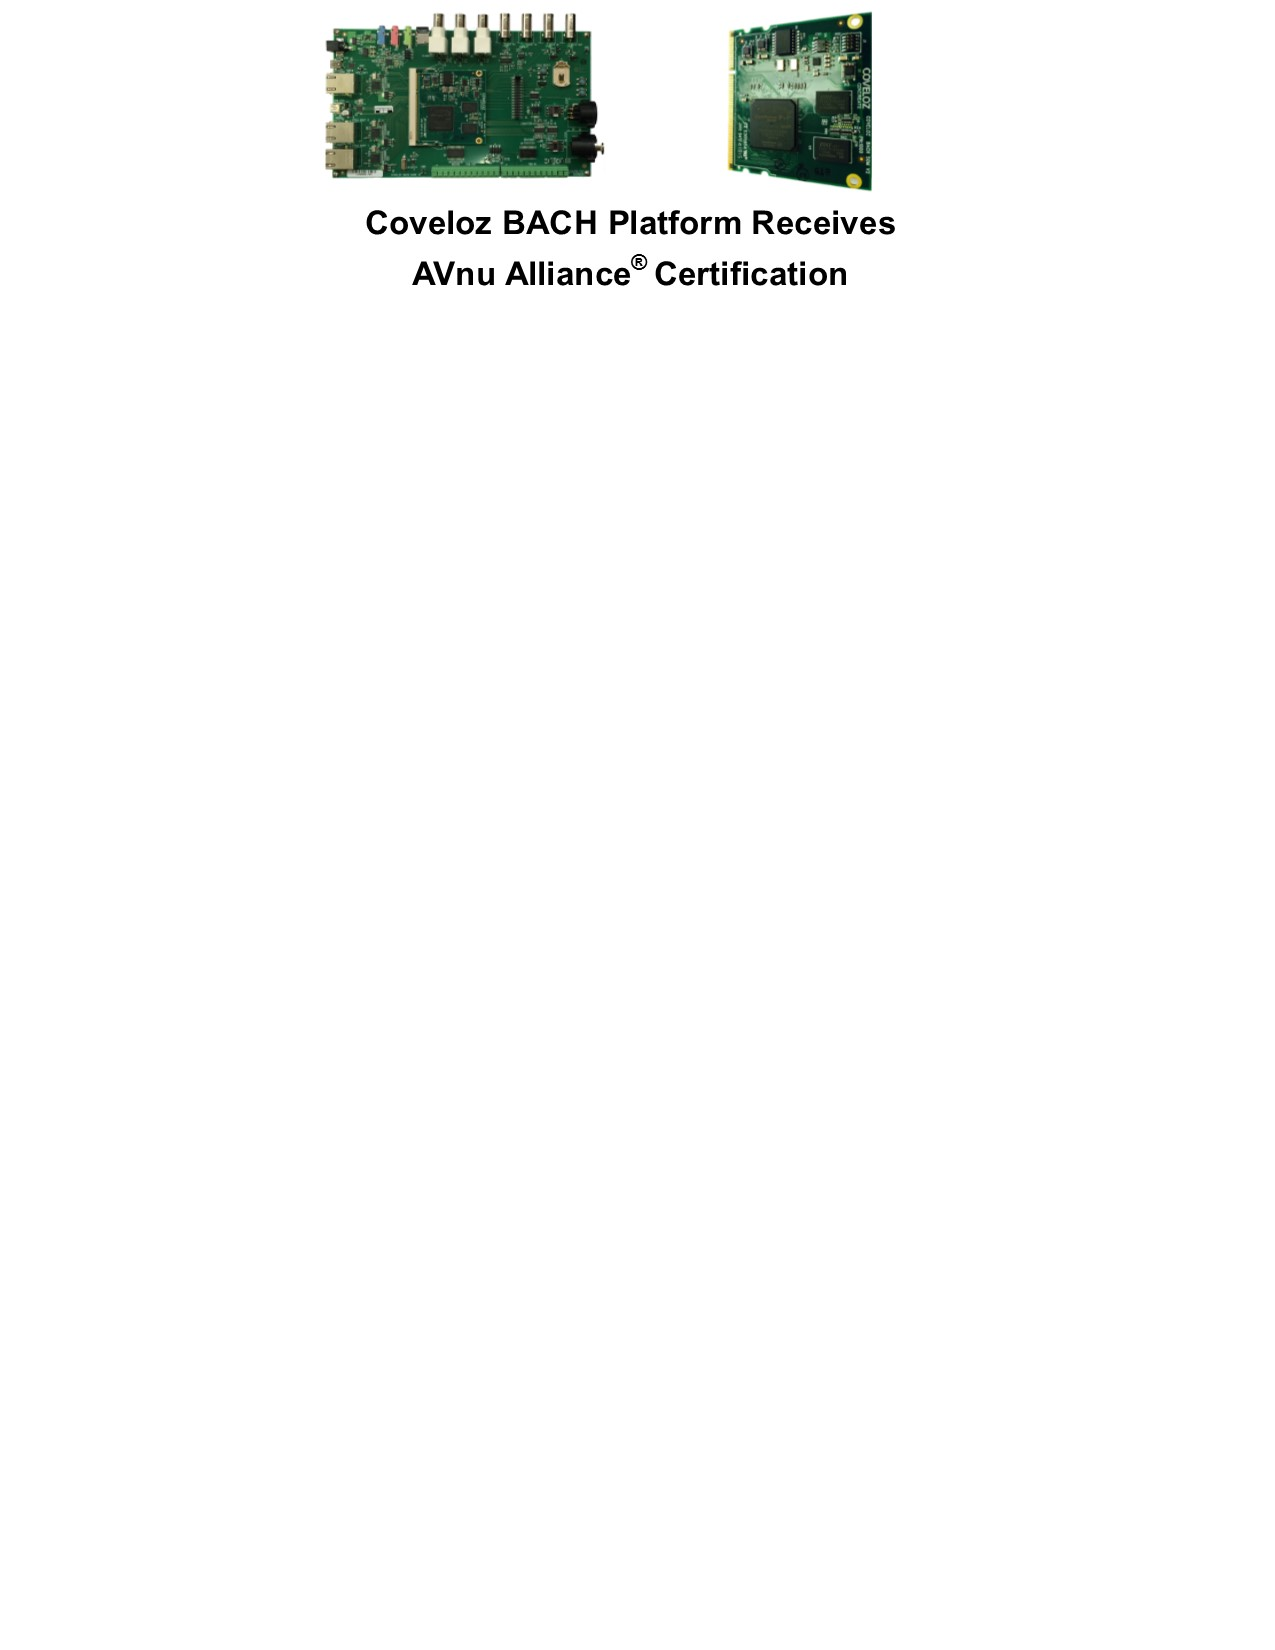 Coveloz-BACH-Platform-AVnu1